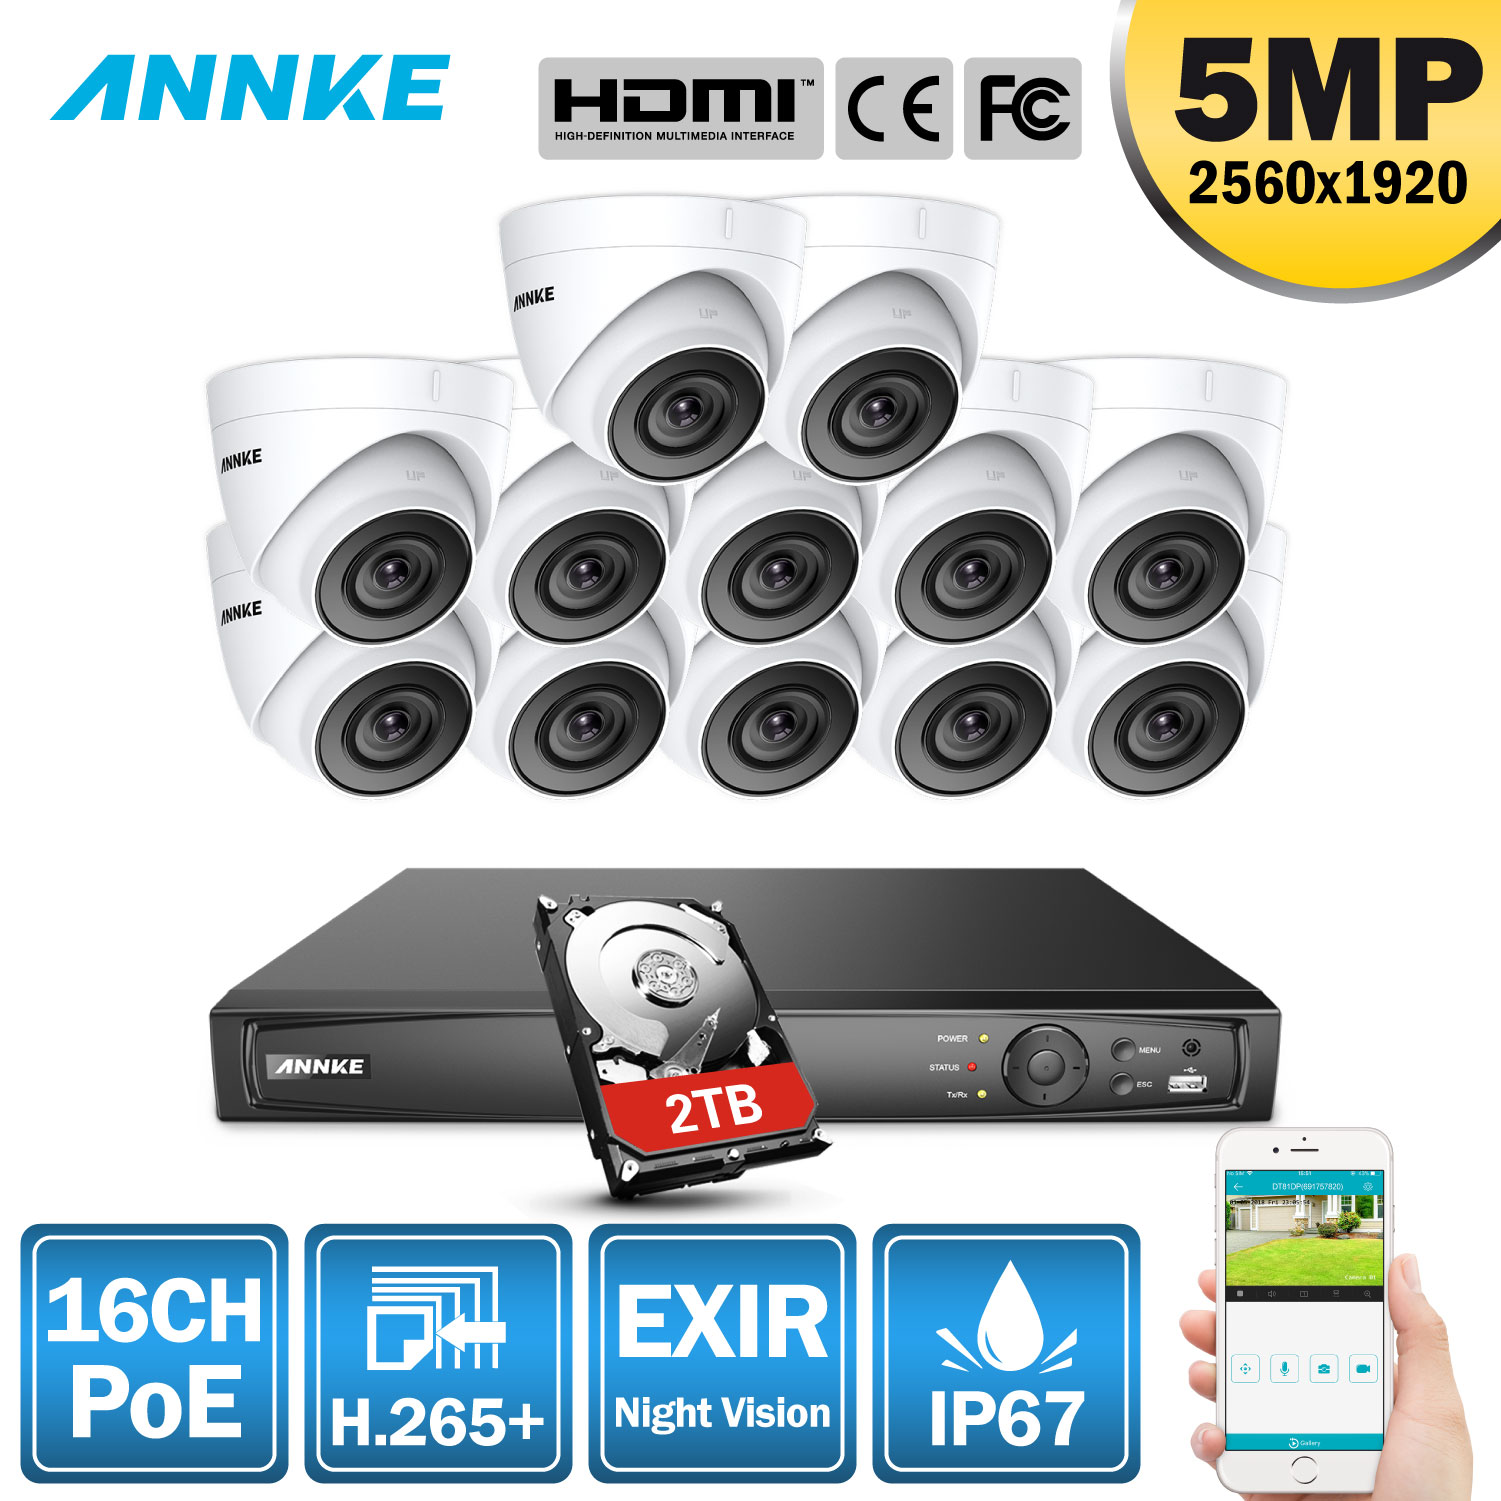 ANNKE 5MP H.265+ 16CH Super HD POE Network Video Security System 12pcs Waterproof Outdoor IP Cameras 2.8mm PoE Camera Kit